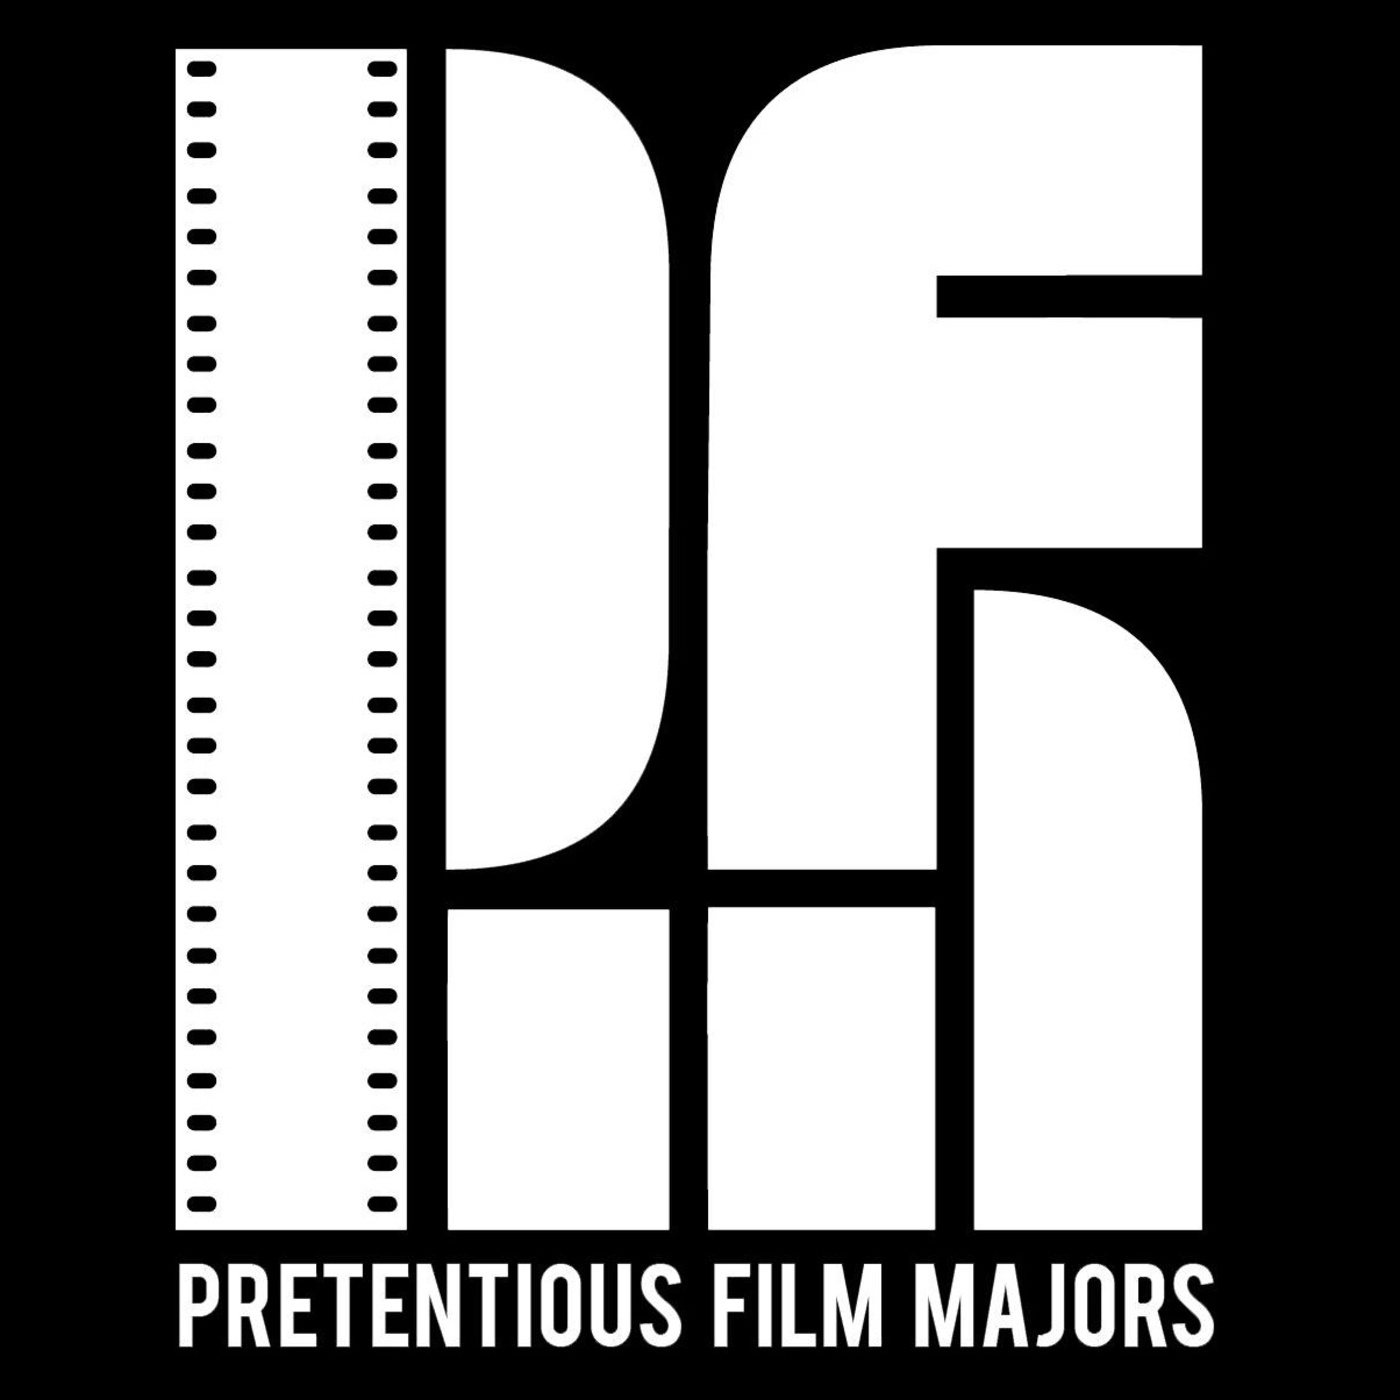 Pretentious Film Majors